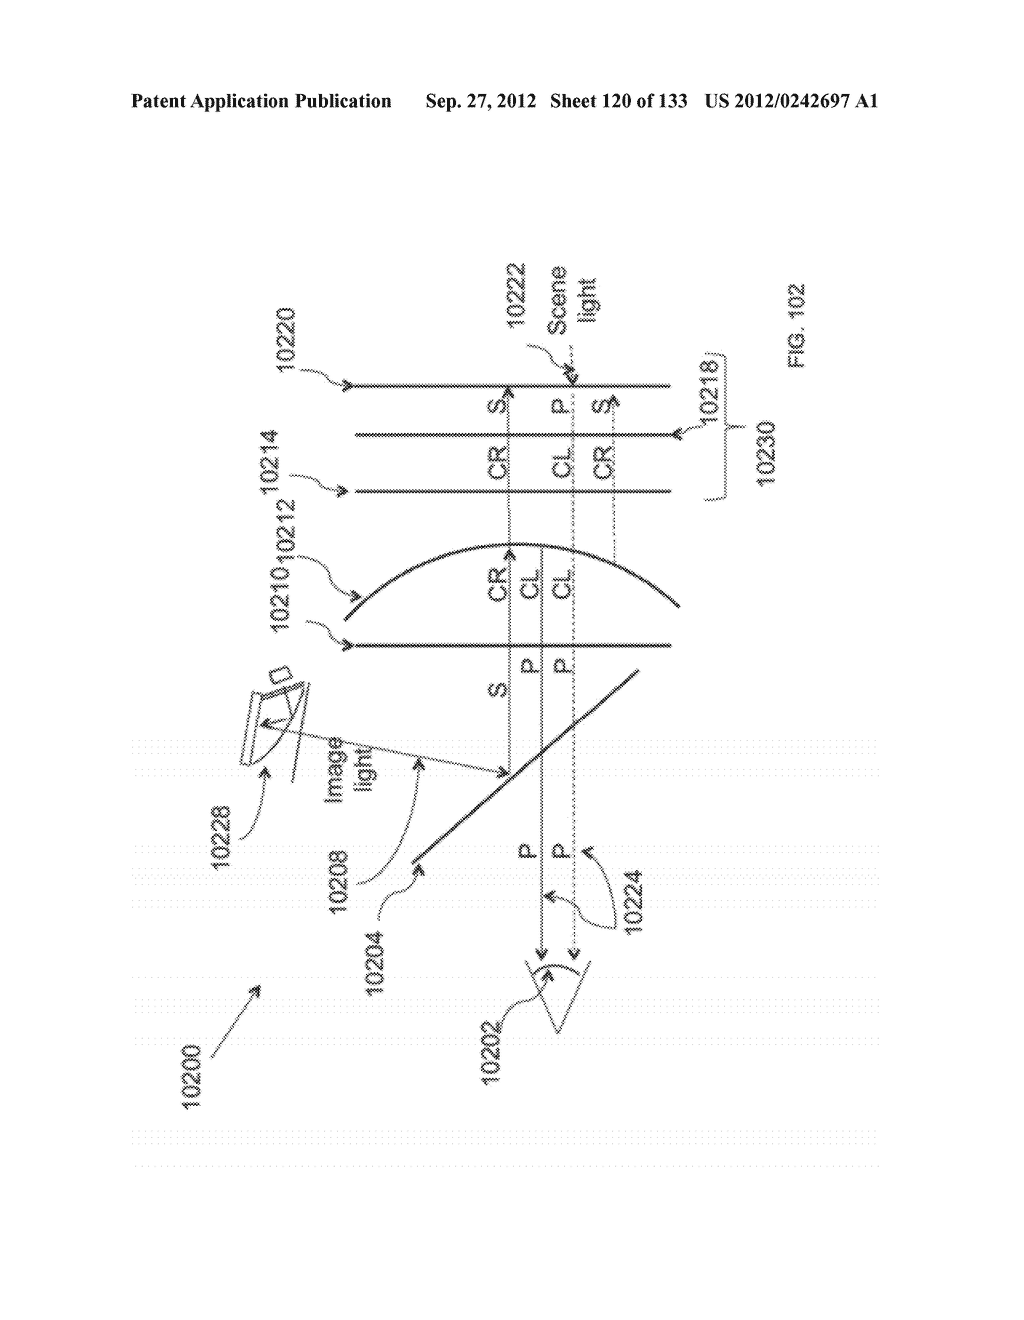 SEE-THROUGH NEAR-EYE DISPLAY GLASSES WITH THE OPTICAL ASSEMBLY INCLUDING     ABSORPTIVE POLARIZERS OR ANTI-REFLECTIVE COATINGS TO REDUCE STRAY LIGHT - diagram, schematic, and image 121